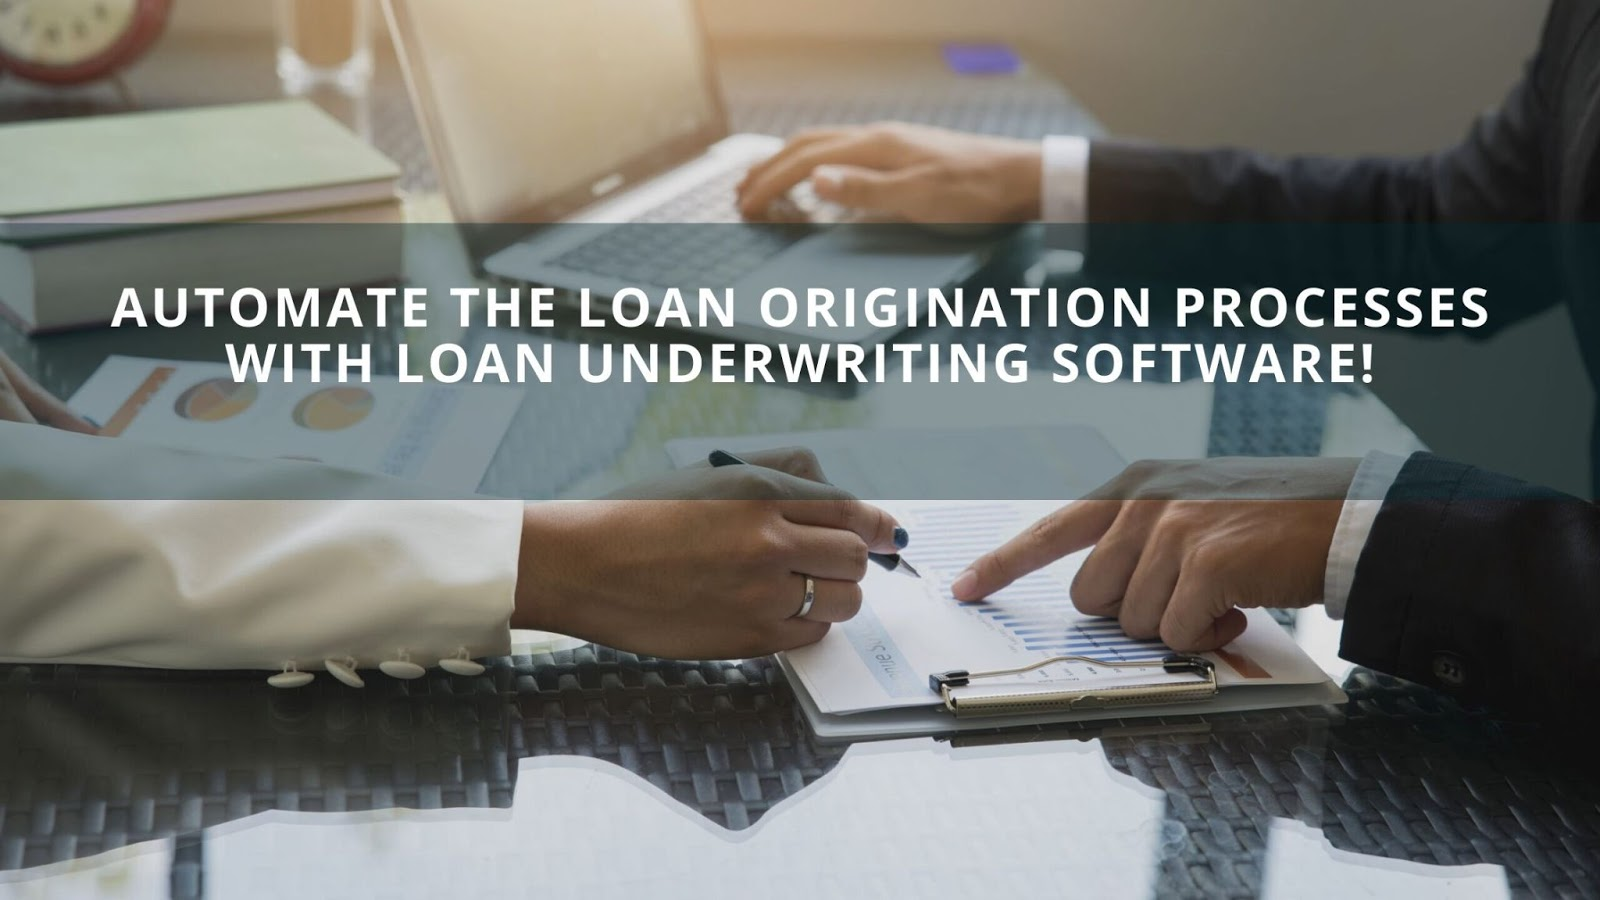 Automate The Loan Origination Processes With Loan Underwriting Software